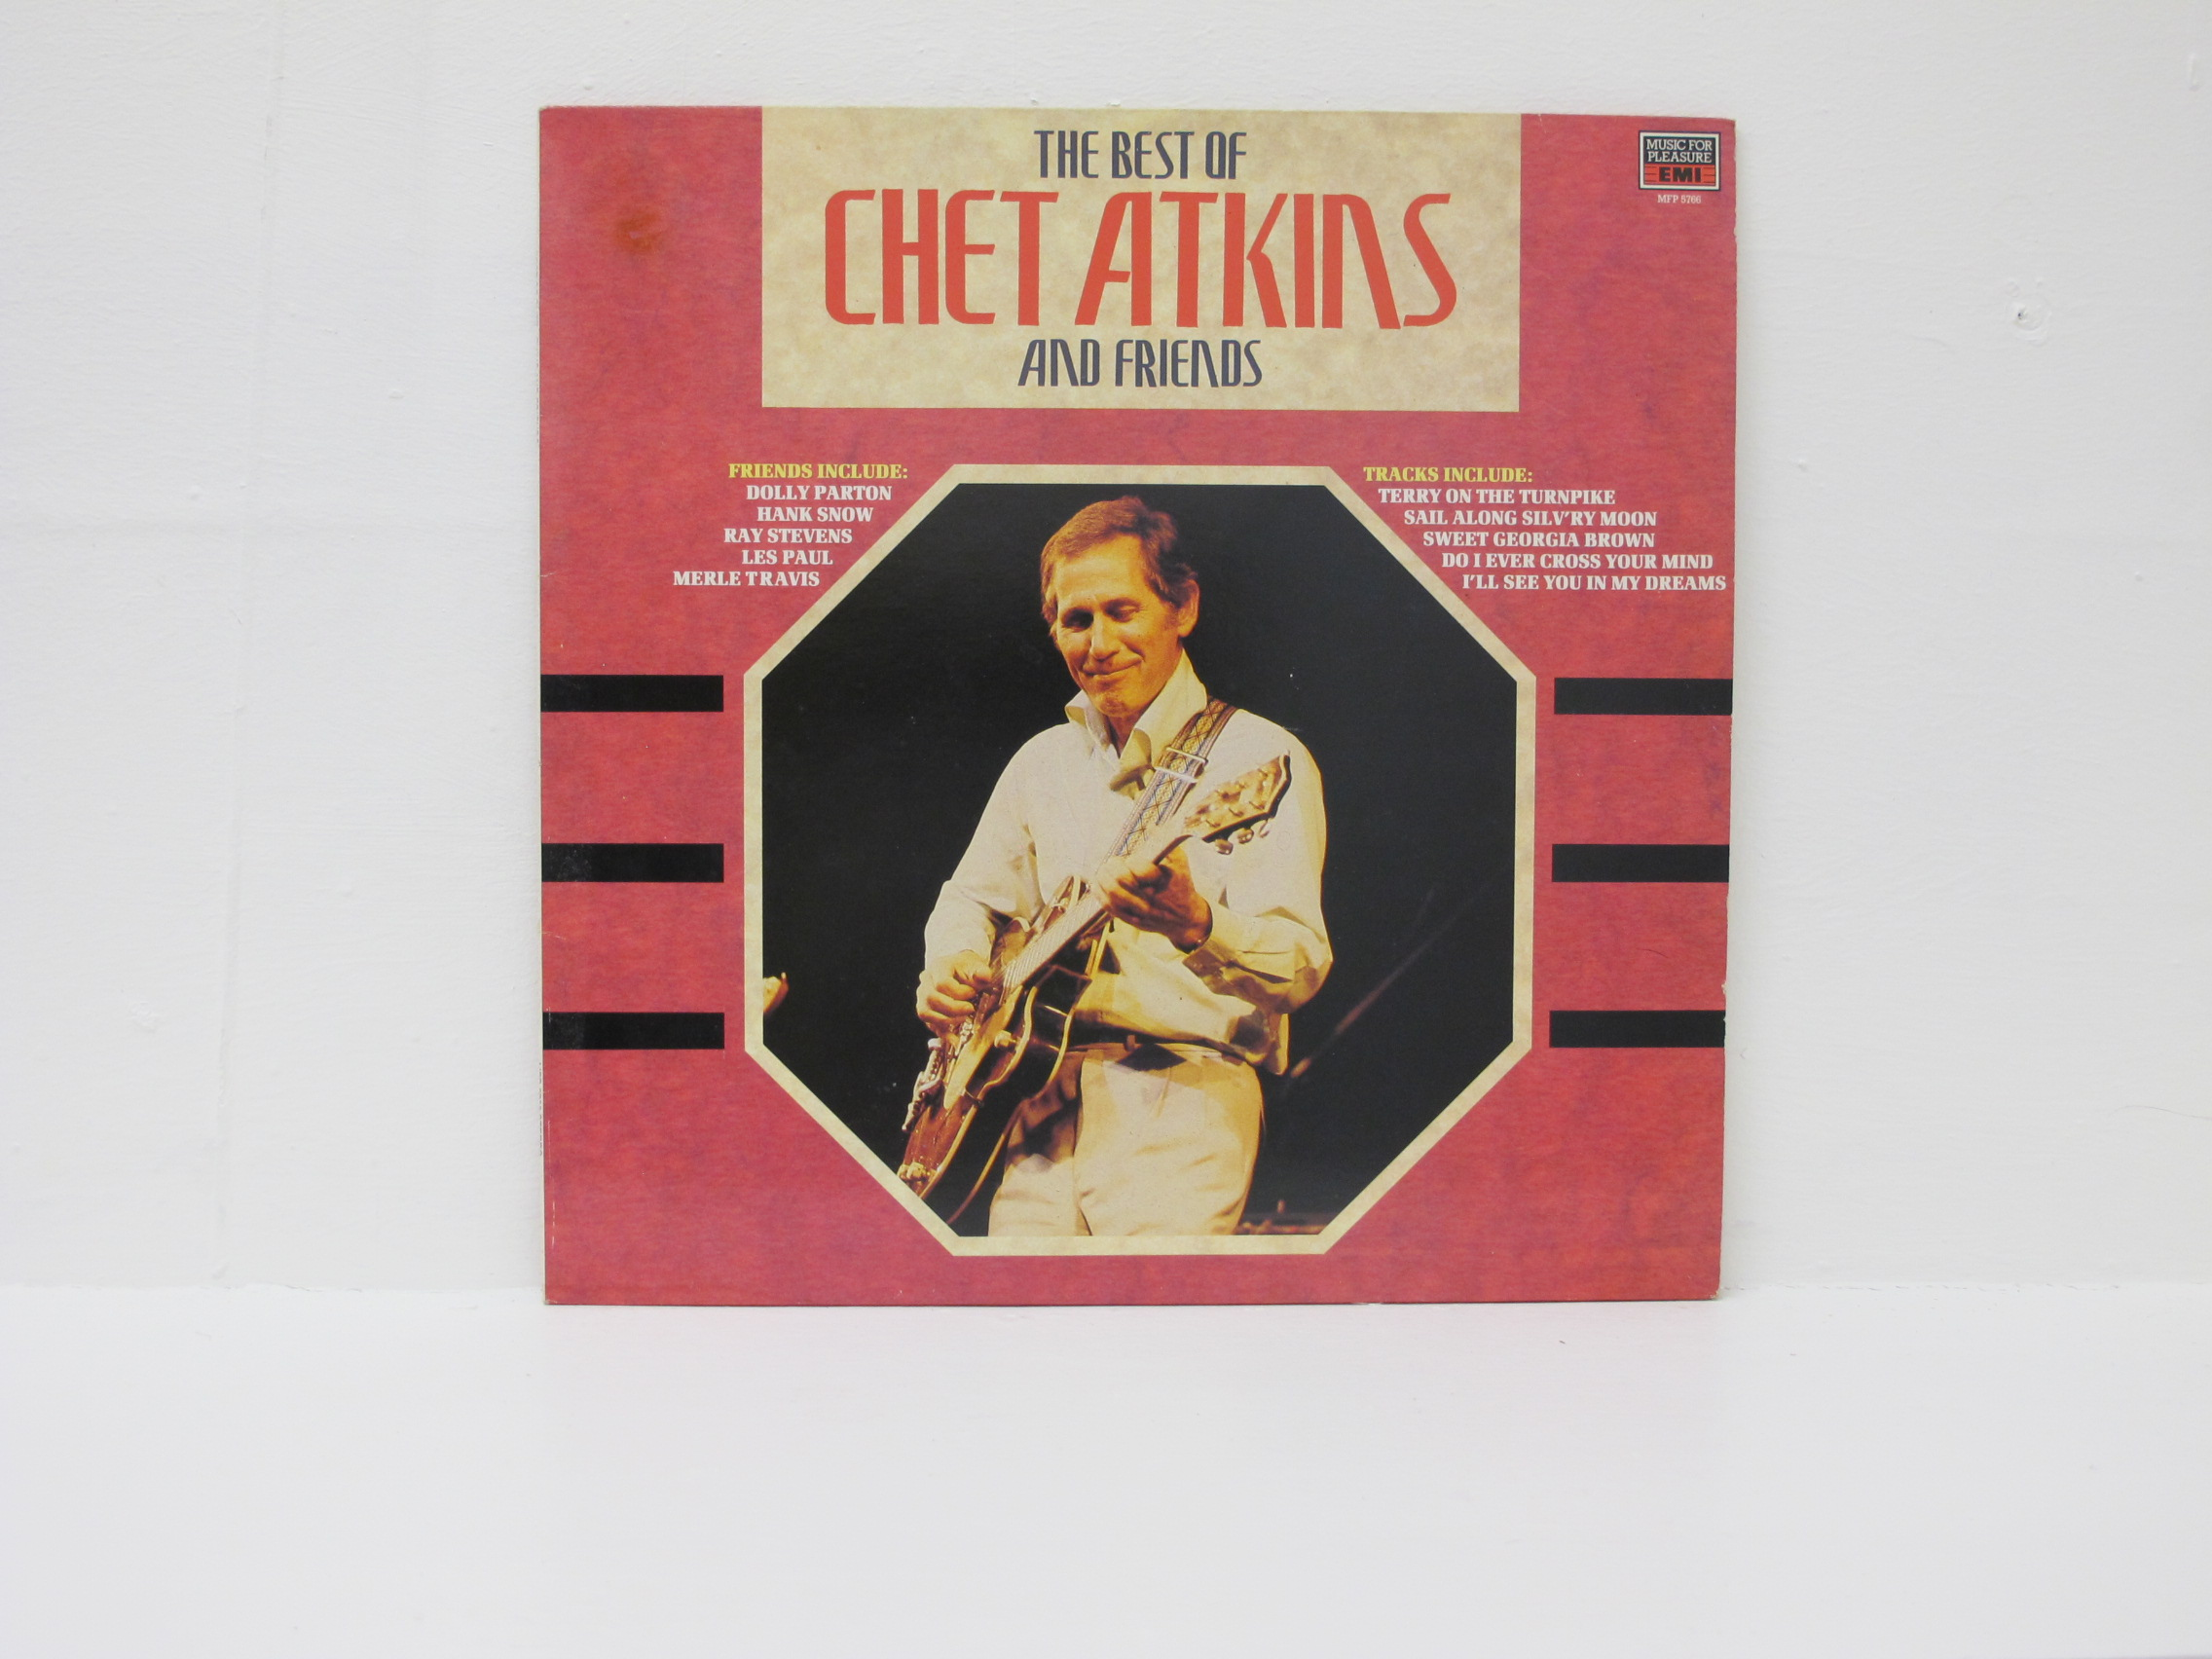 Chet Atkins - The Best Of